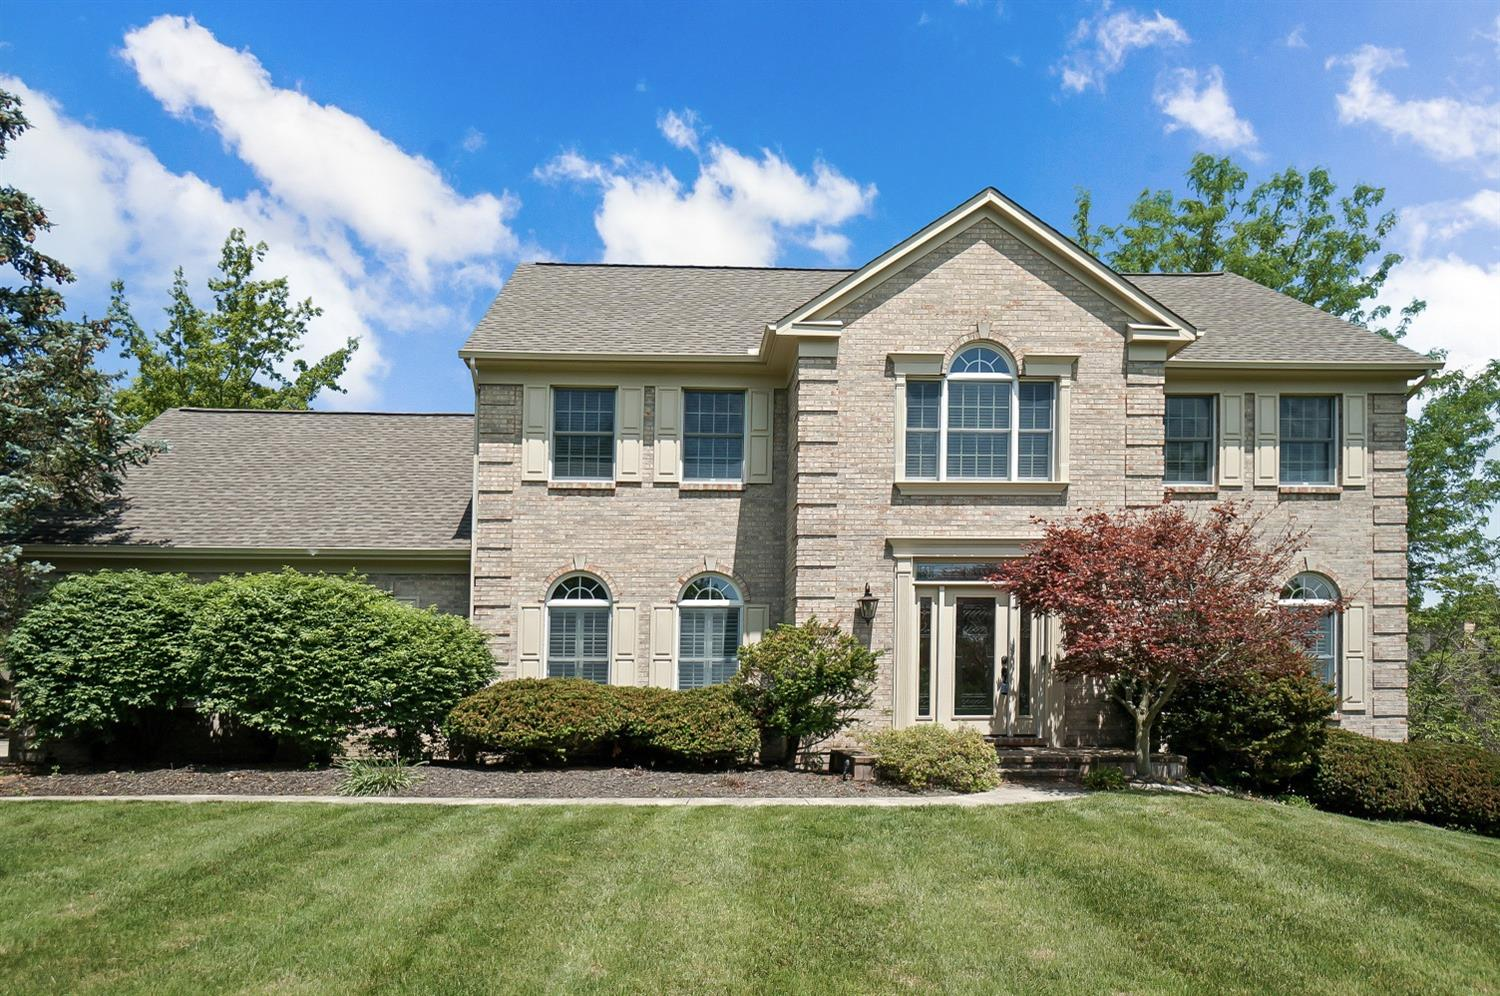 Property for sale at 8473 Old Shaw Way, West Chester,  Ohio 45069